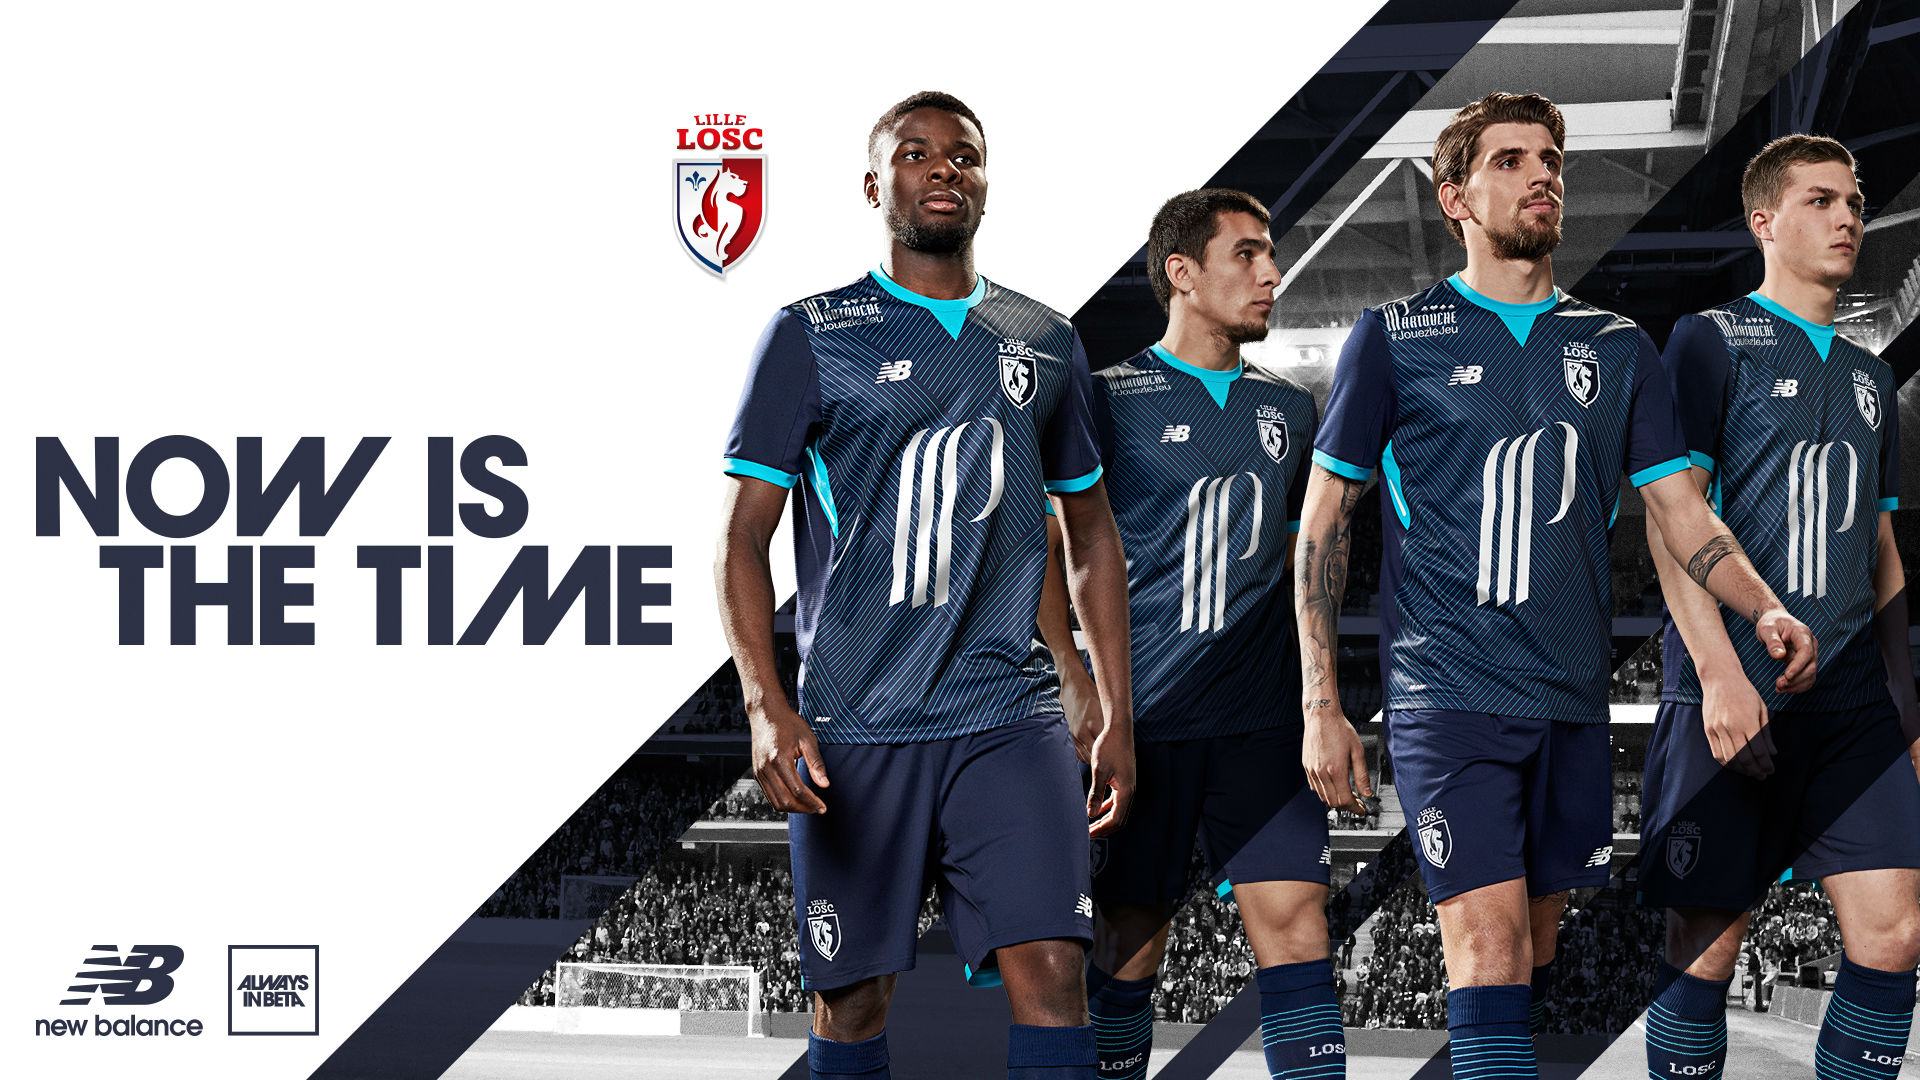 1920x1080 - Lille OSC Wallpapers 15